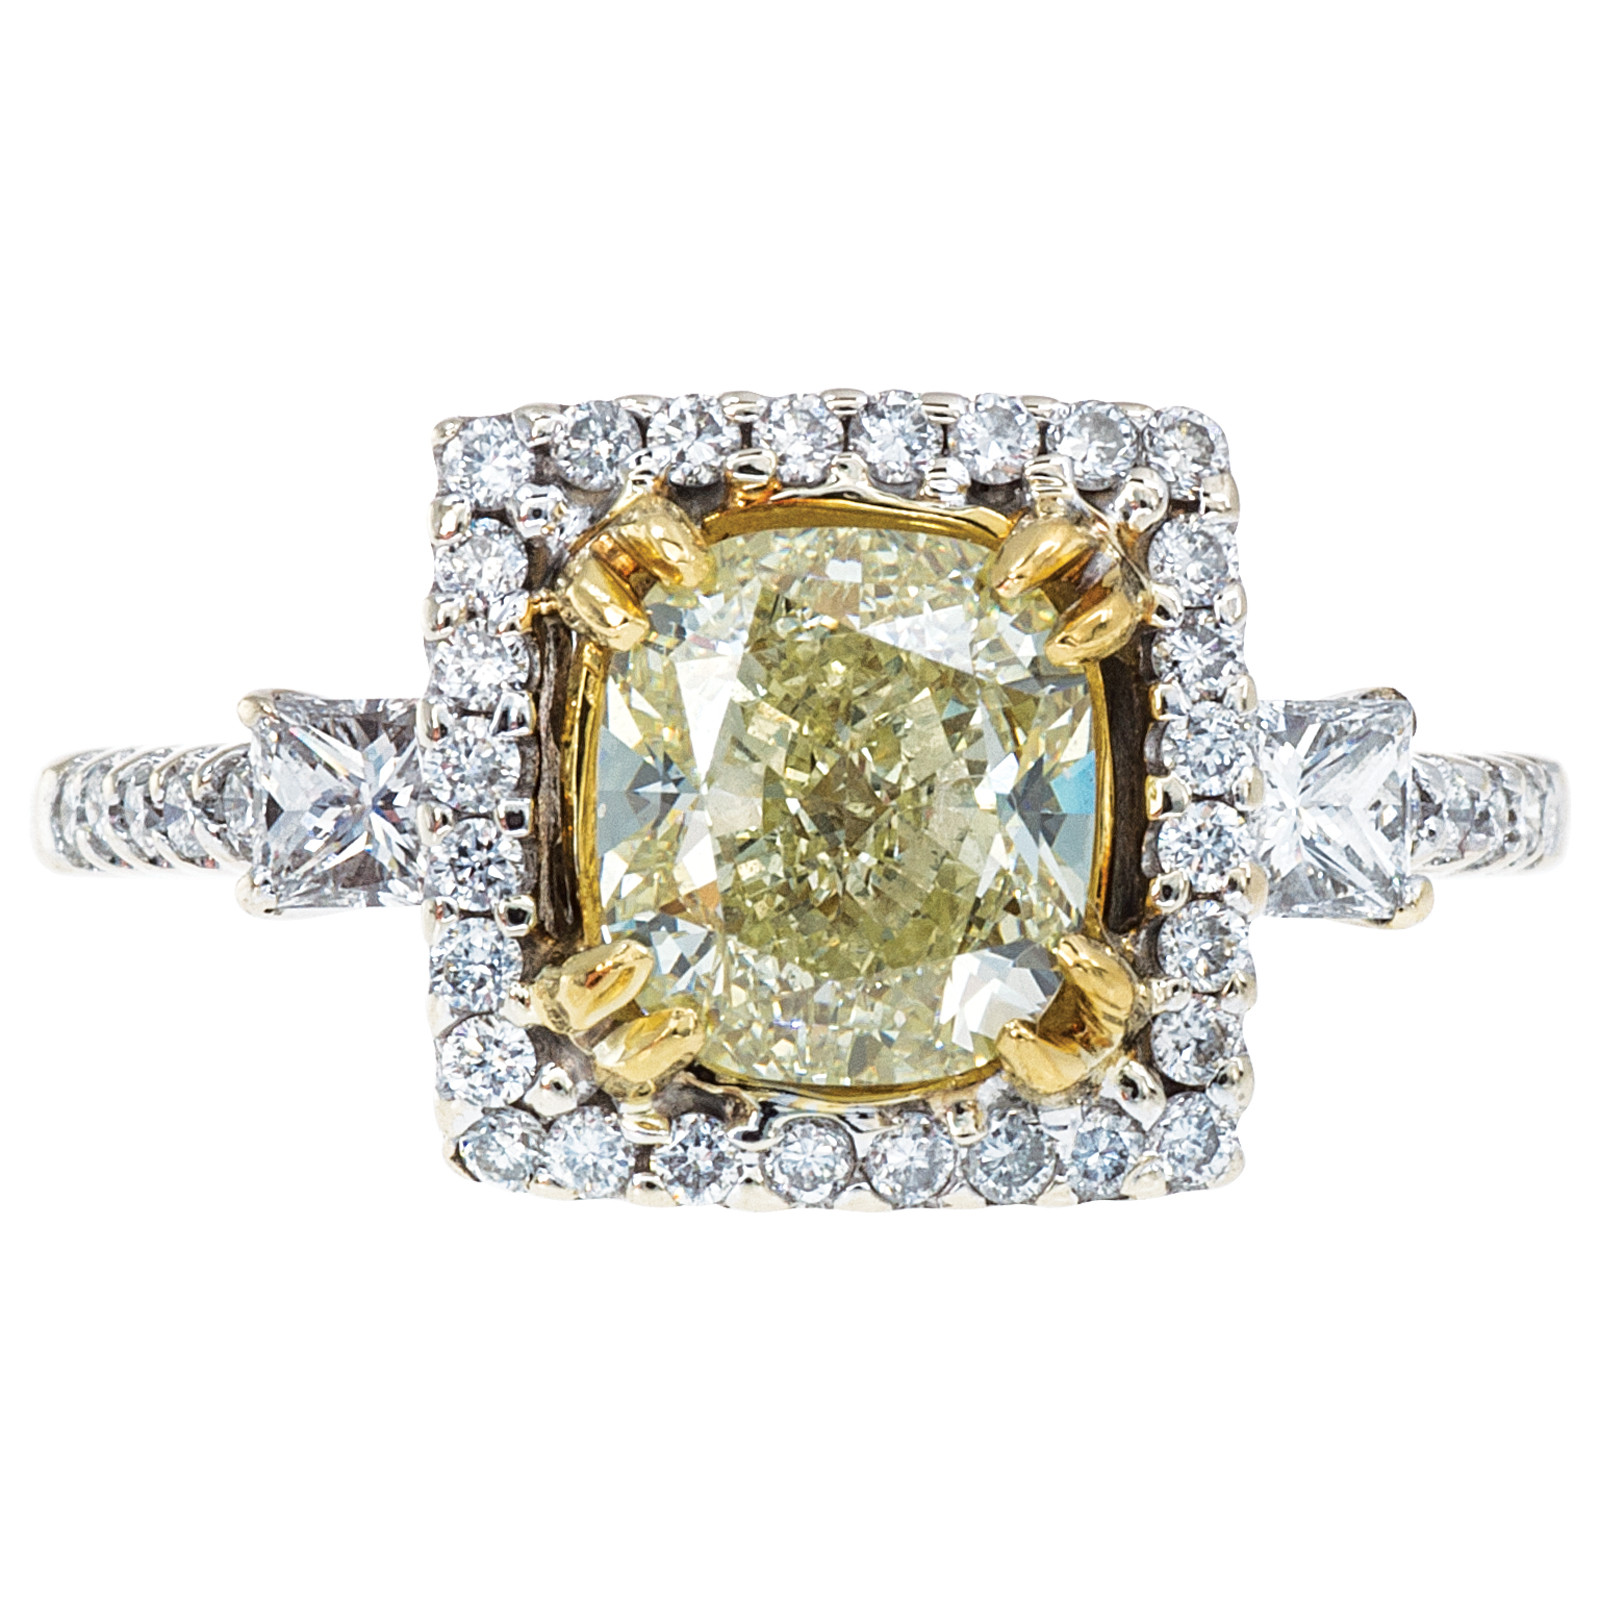 Vintage 1.81 CTW Fancy Yellow Diamond Engagement Ring